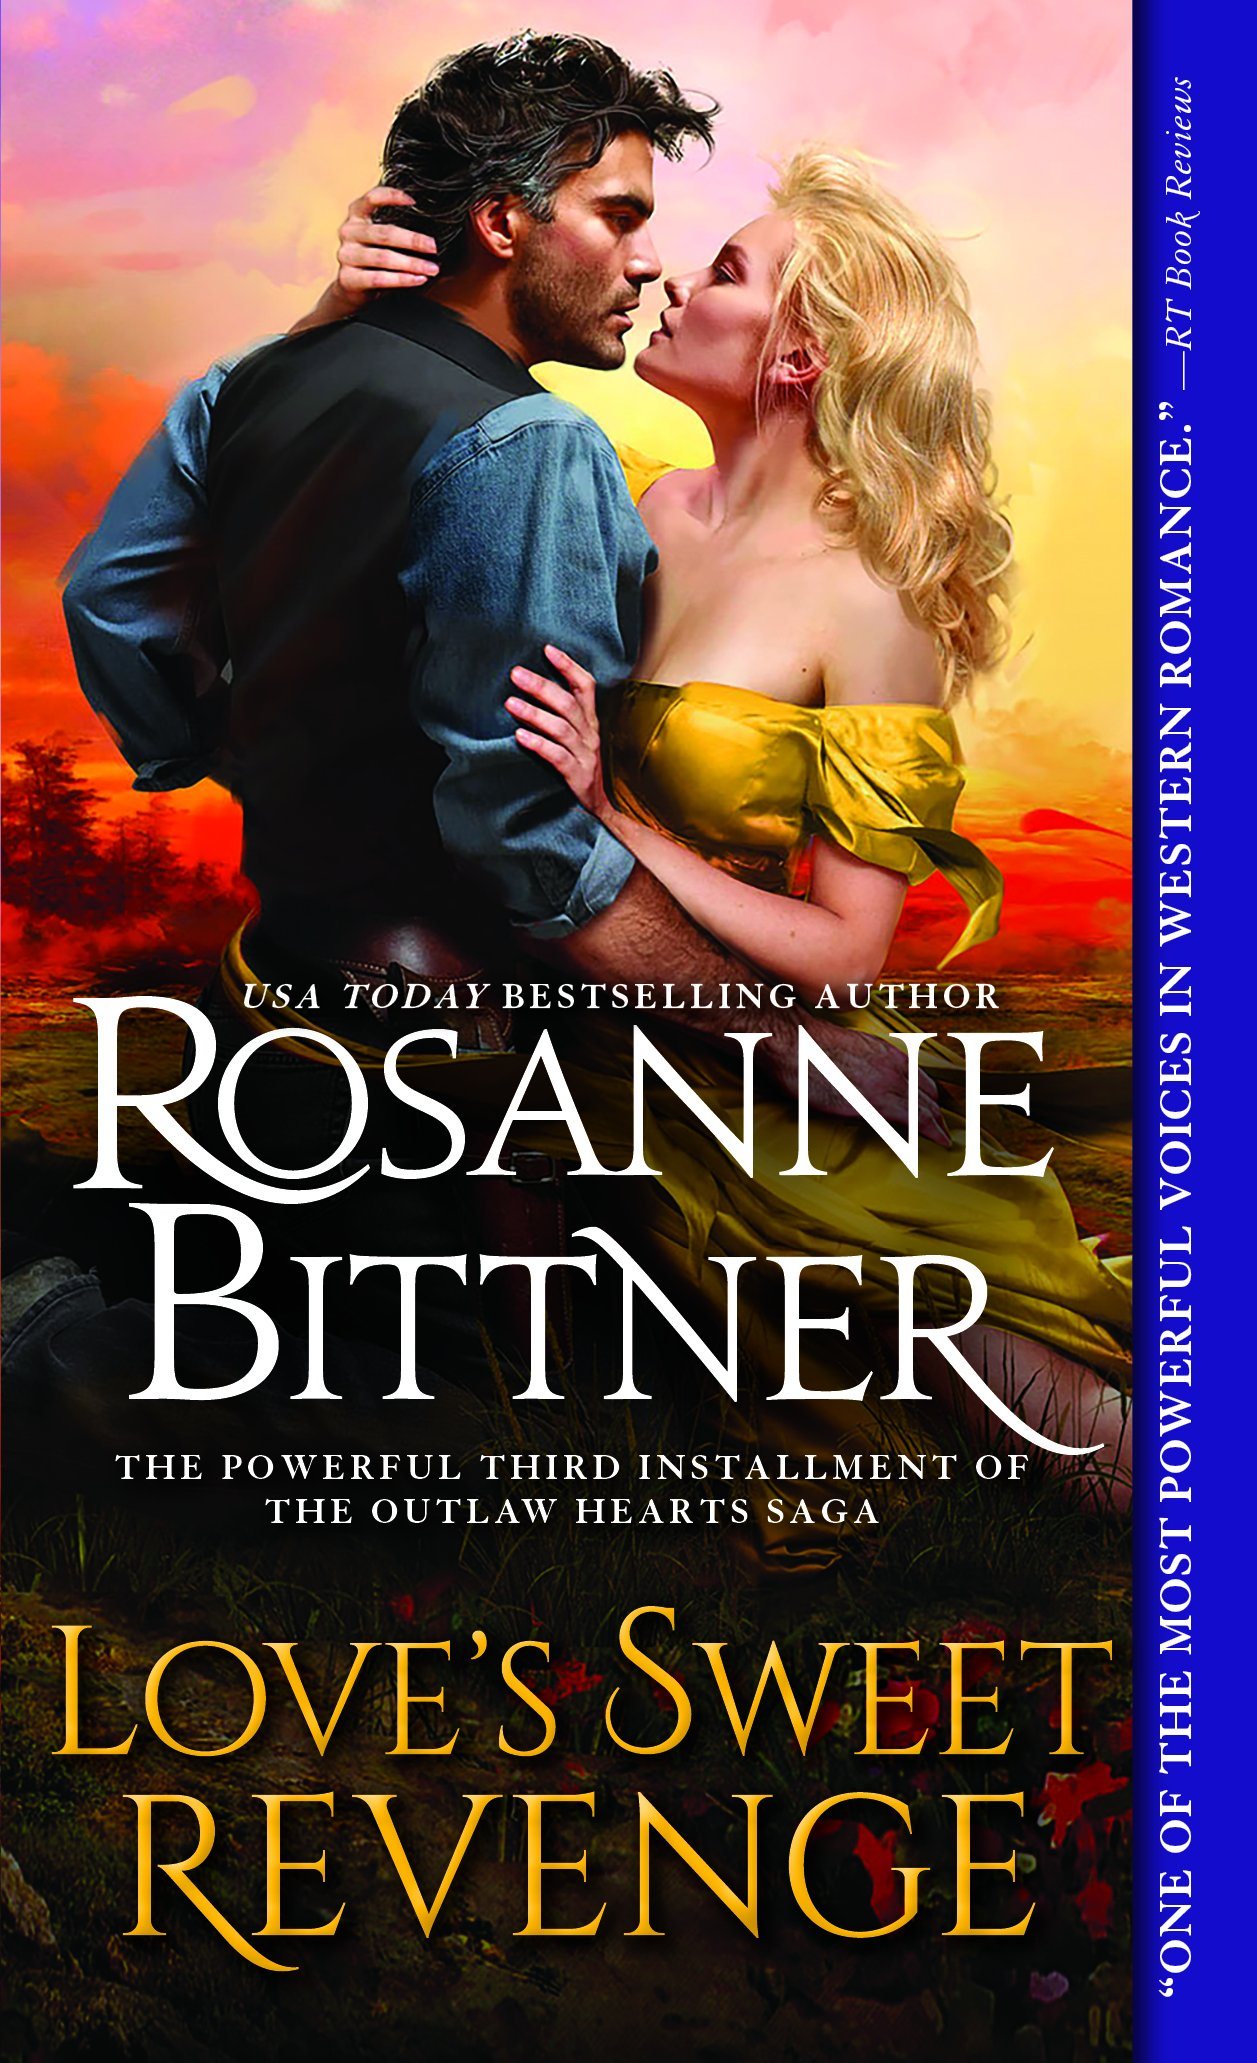 Love's Sweet Revenge (Outlaw Hearts Series): Rosanne Bittner